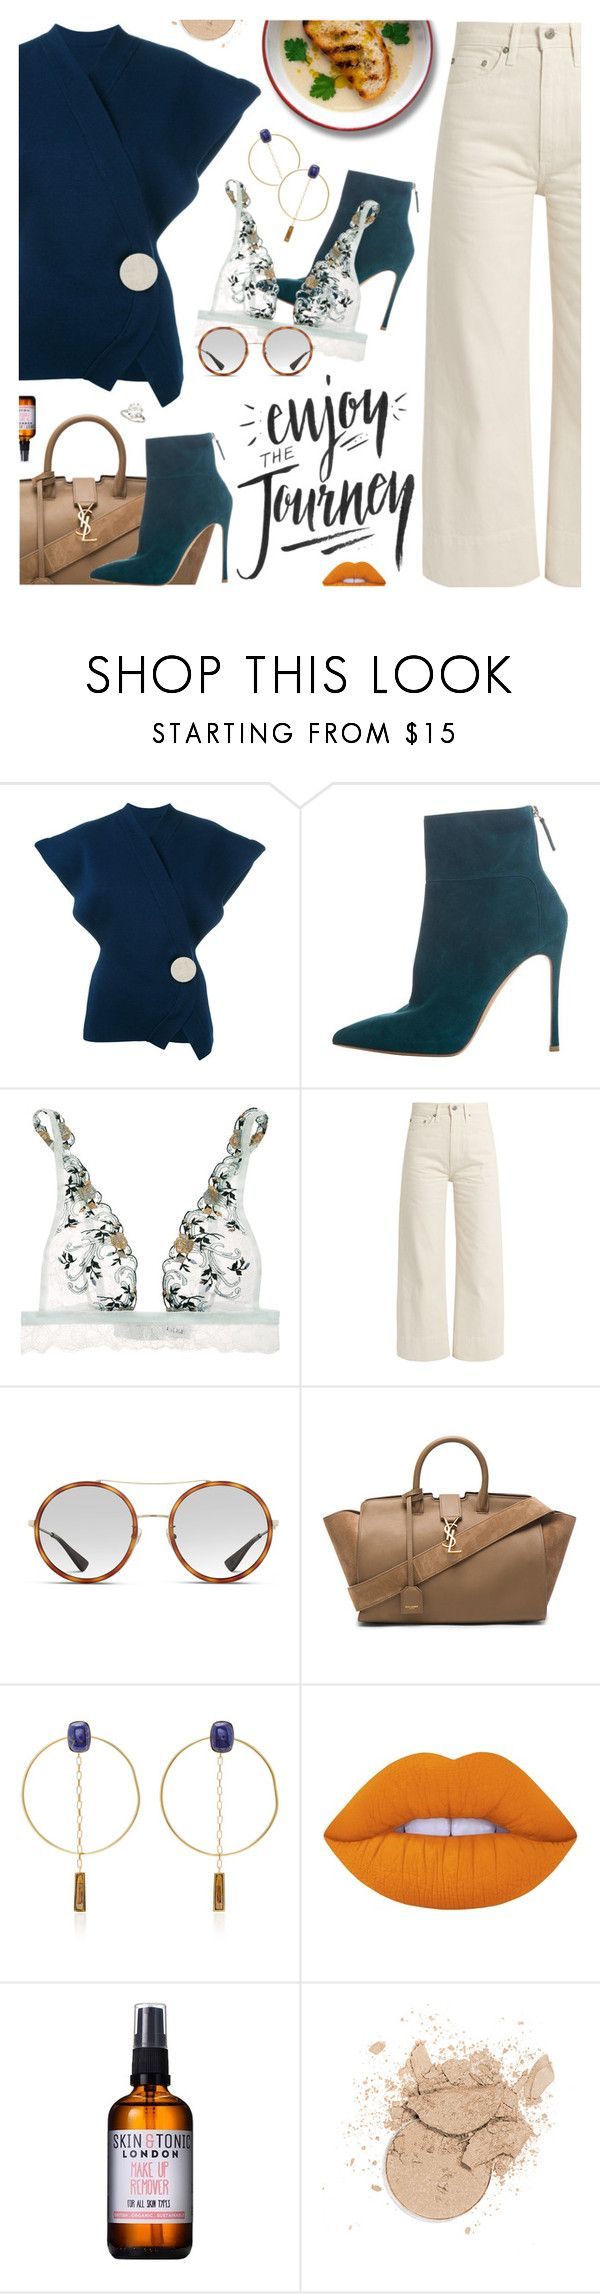 """""""Abracadabra, Steve Miller Band"""" by blendasantos ❤ liked on Polyvore featuring Jacquemus, Gianvito Rossi, La Perla, Brock Collection, Gucci, Yves Saint Laurent, Isabel Marant, Lime Crime and Skin & Tonic"""